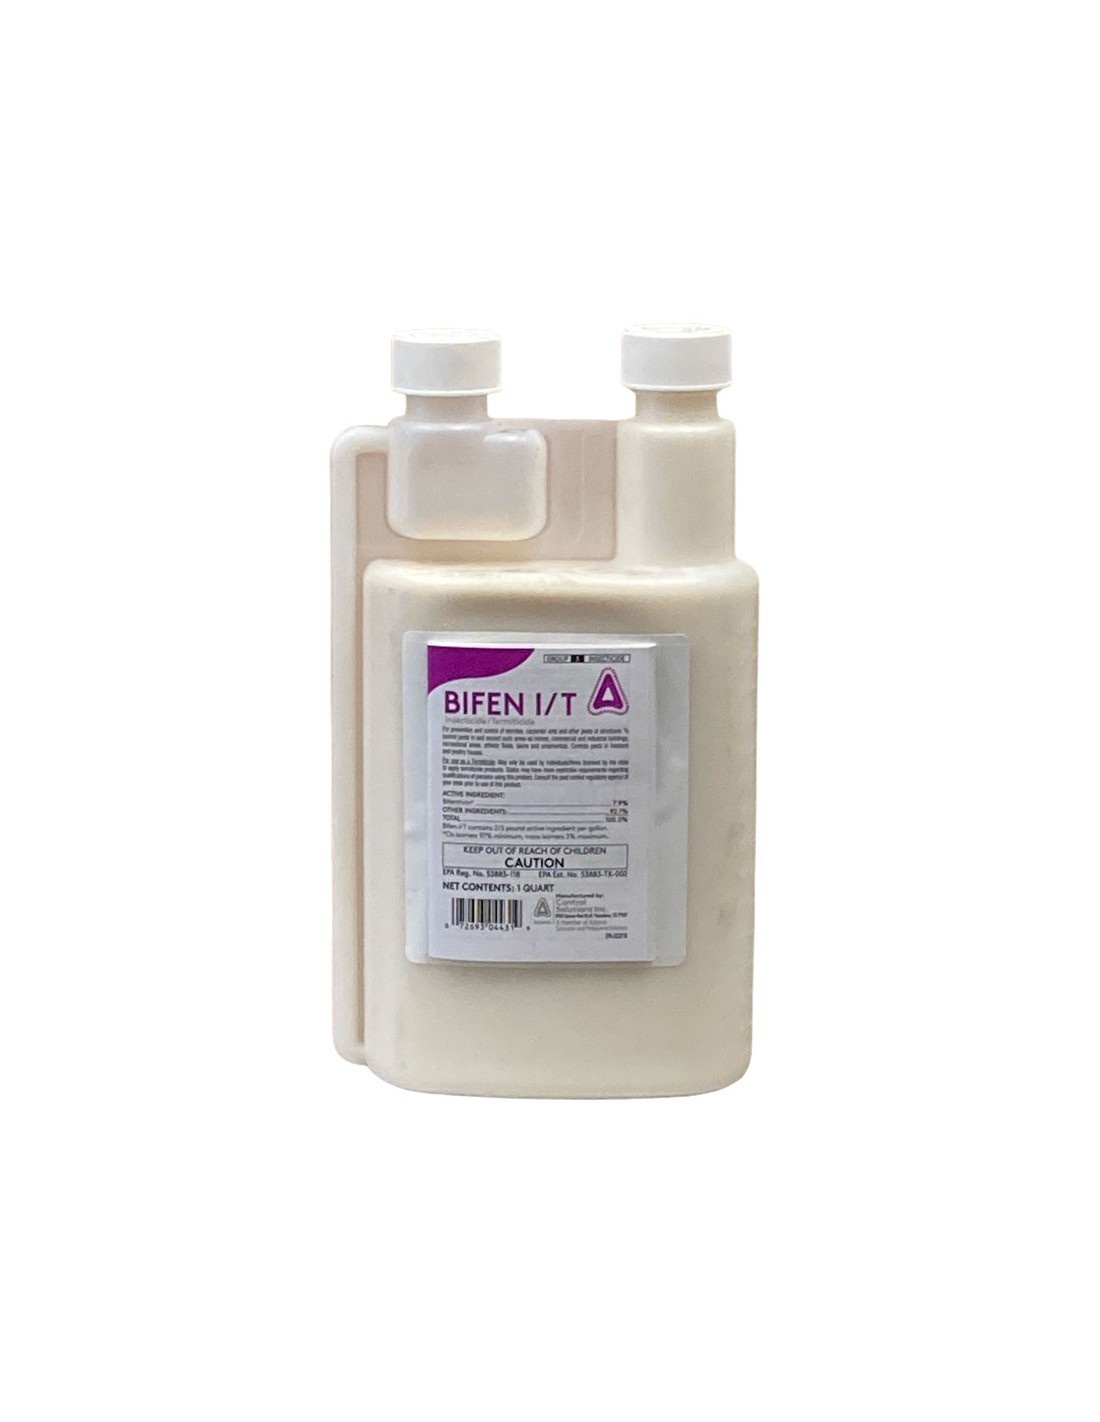 is bifen I/t safe to spray on carpet? how about dogs?